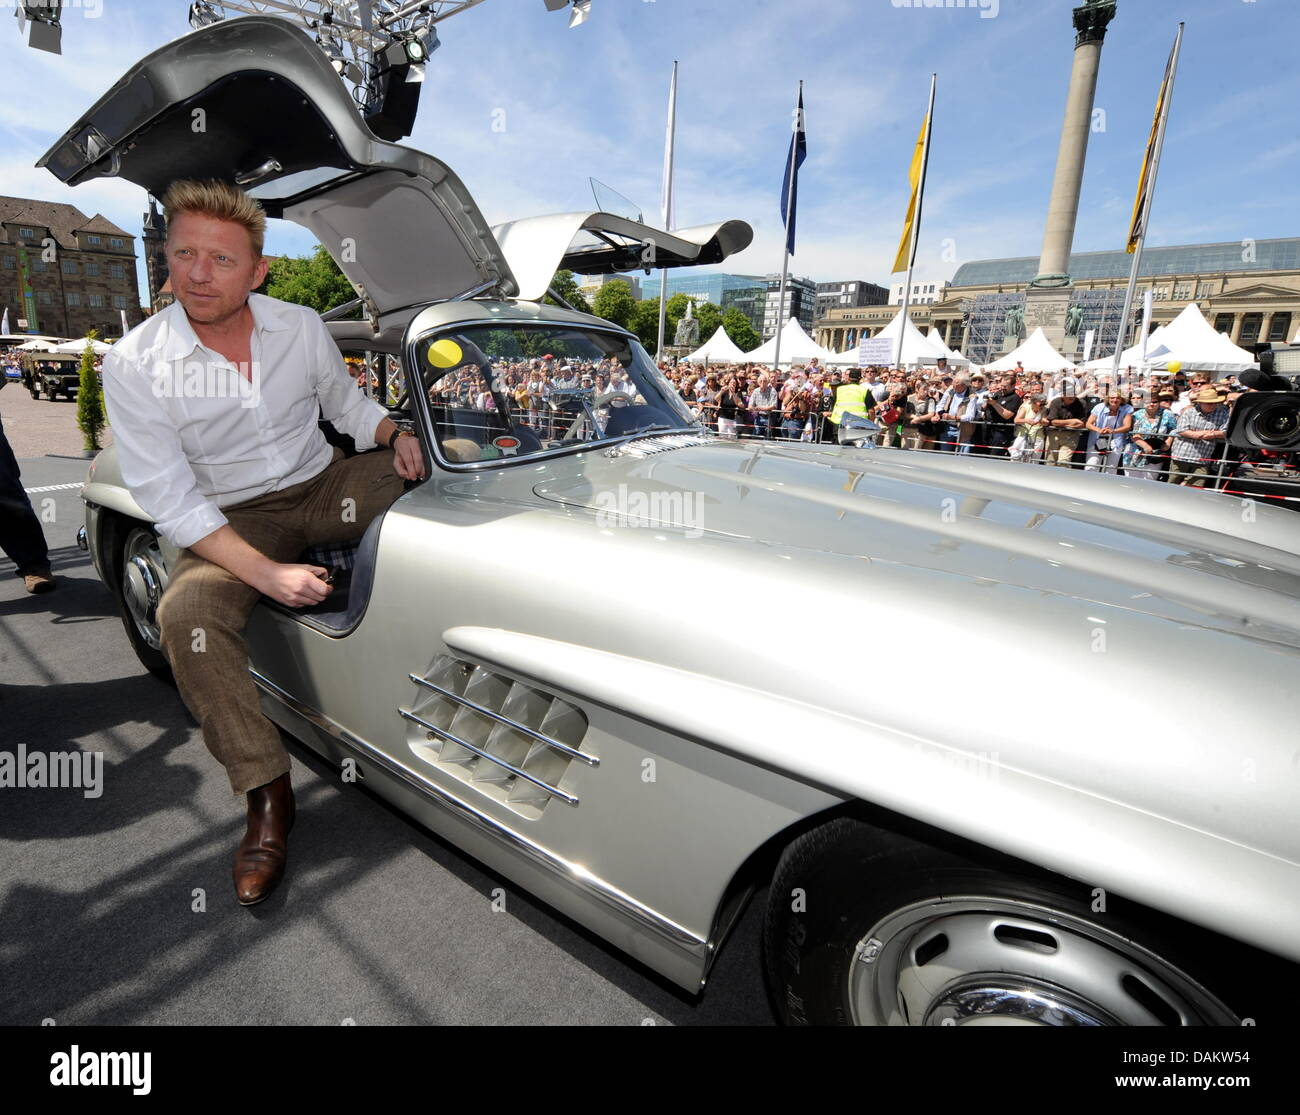 Former tennis pro Boris Becker in a Mercedes gull-wing door classic